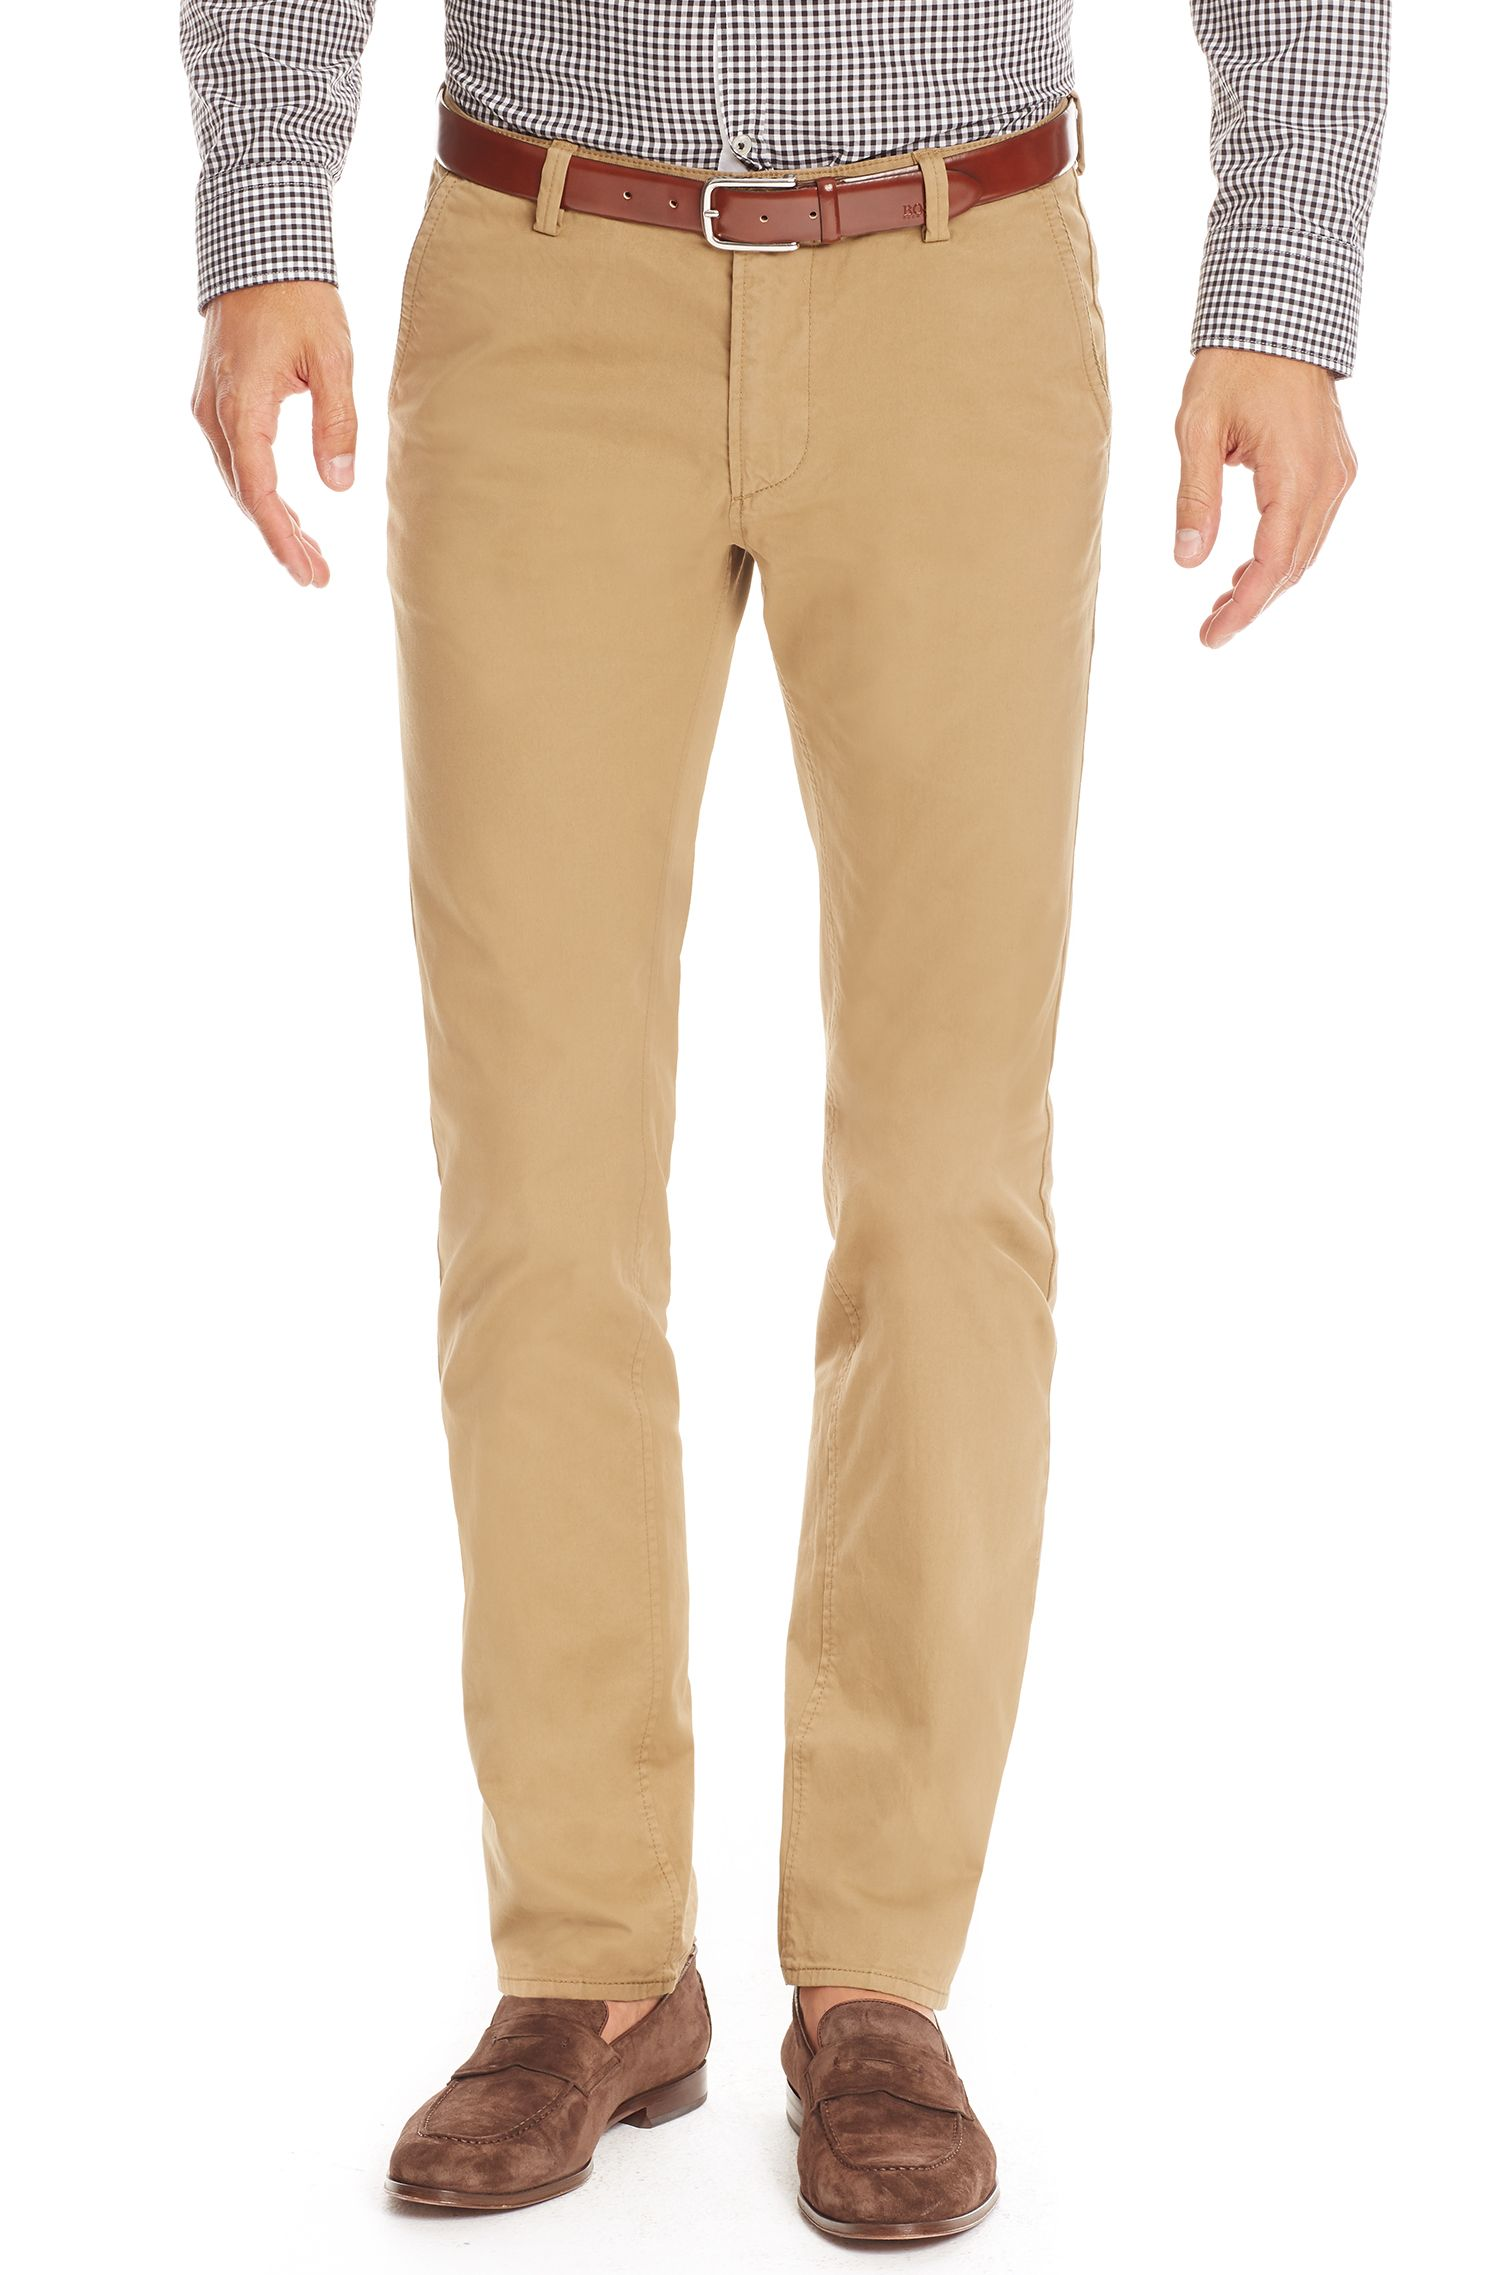 Stretch Cotton Colored Chino Pant, Slim Fit | Rice, Beige